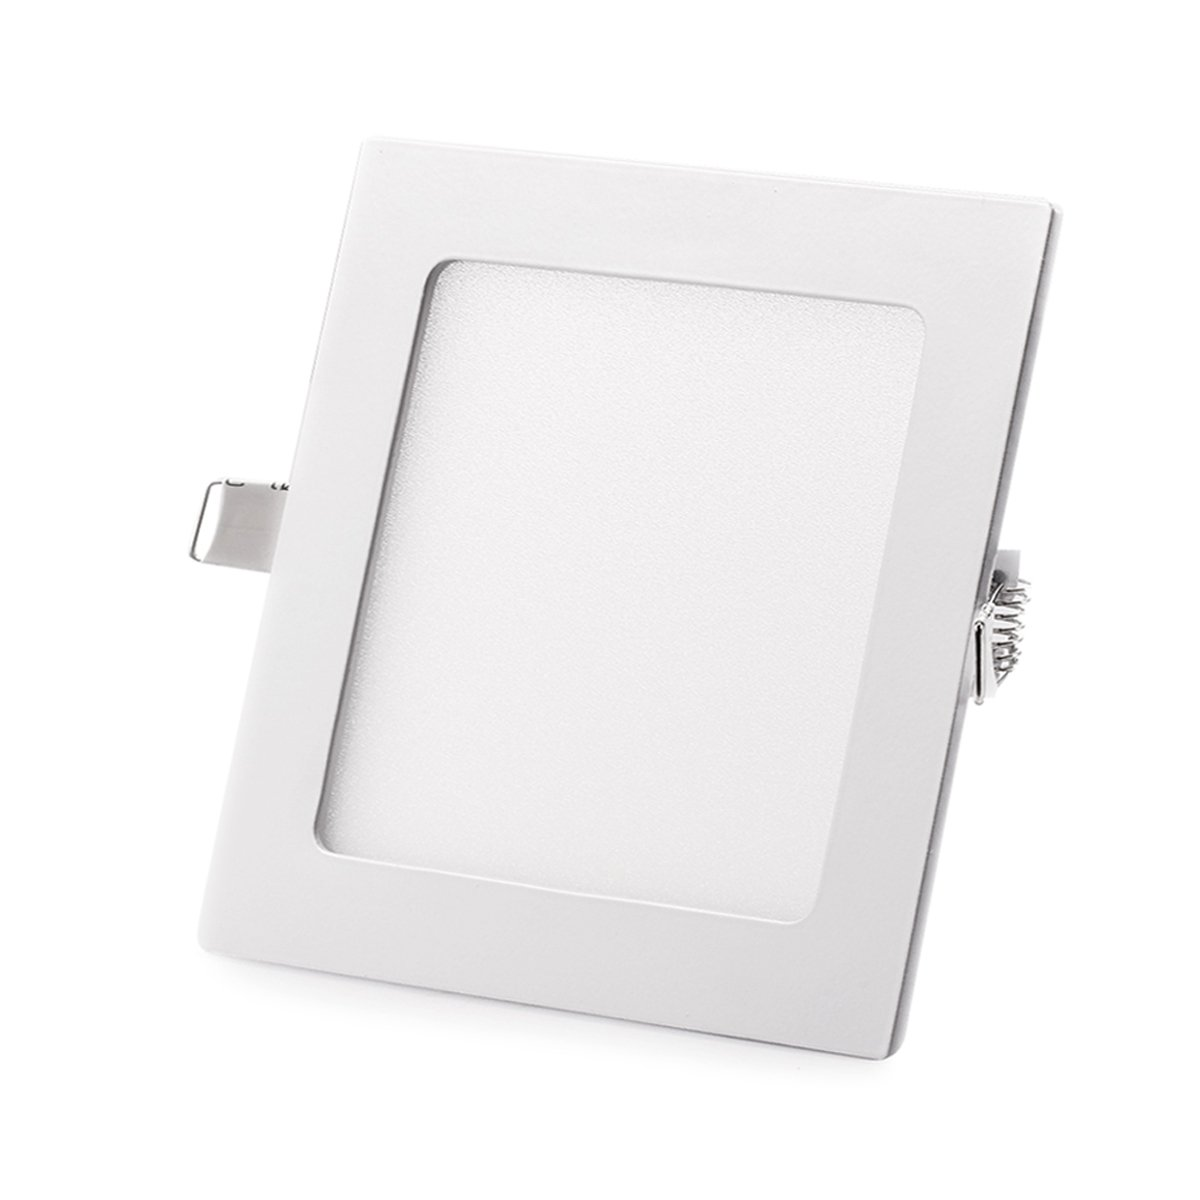 SAYHON Ultra-Thin 9W 5-inch LED Retrofit Recessed Lighting Kit Fixture, Non-Dimmable Square Flat Panel Ceiling Light Downlight, 3000K Warm White 135MM Cut Hole for Hallway/Kitchen/Bedroom/Home/Office